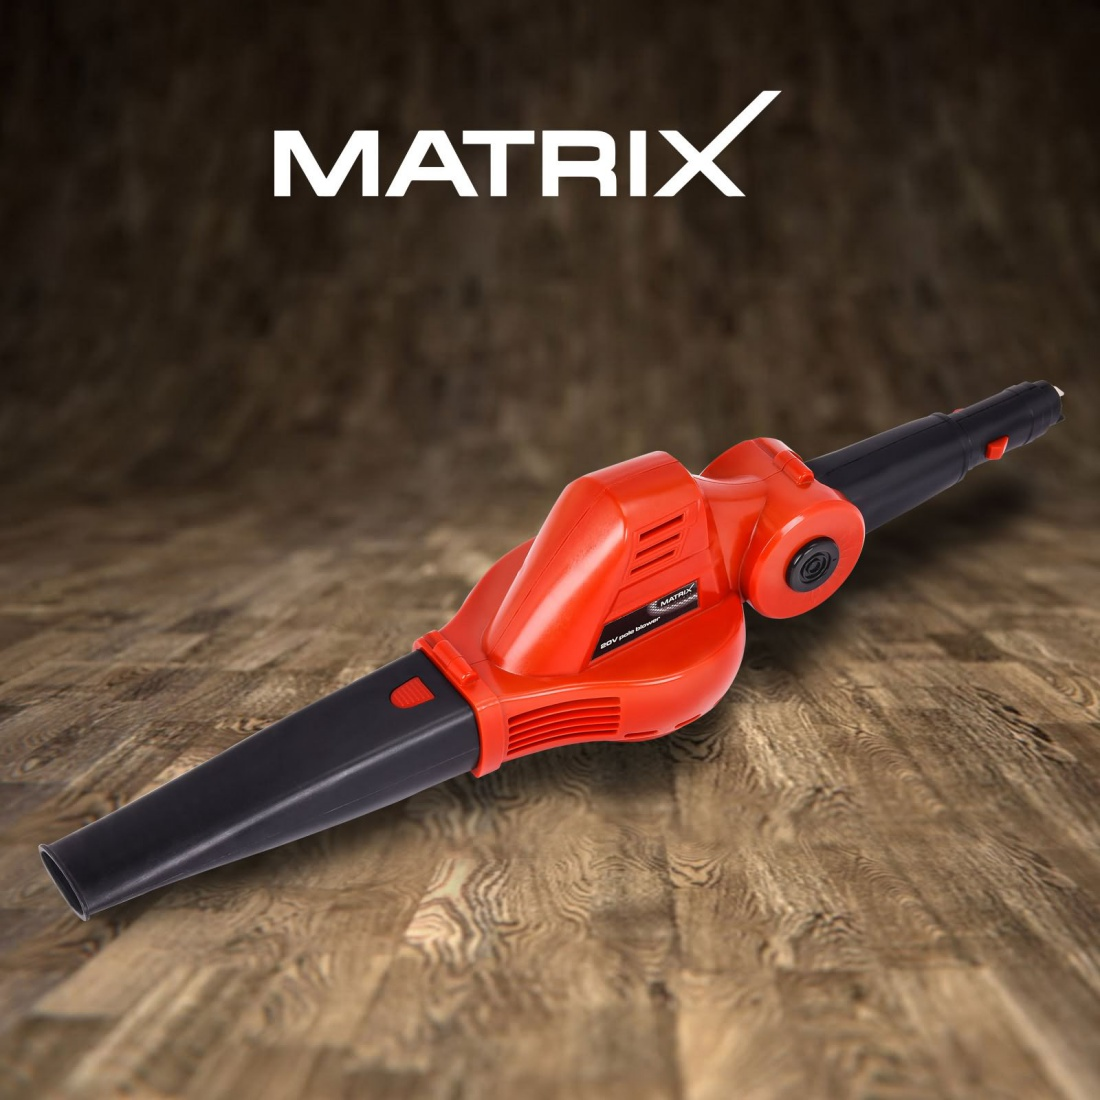 Matrix 20V Pole Cordless Blower Electric Sweeper Garden Tool Head Skin Only